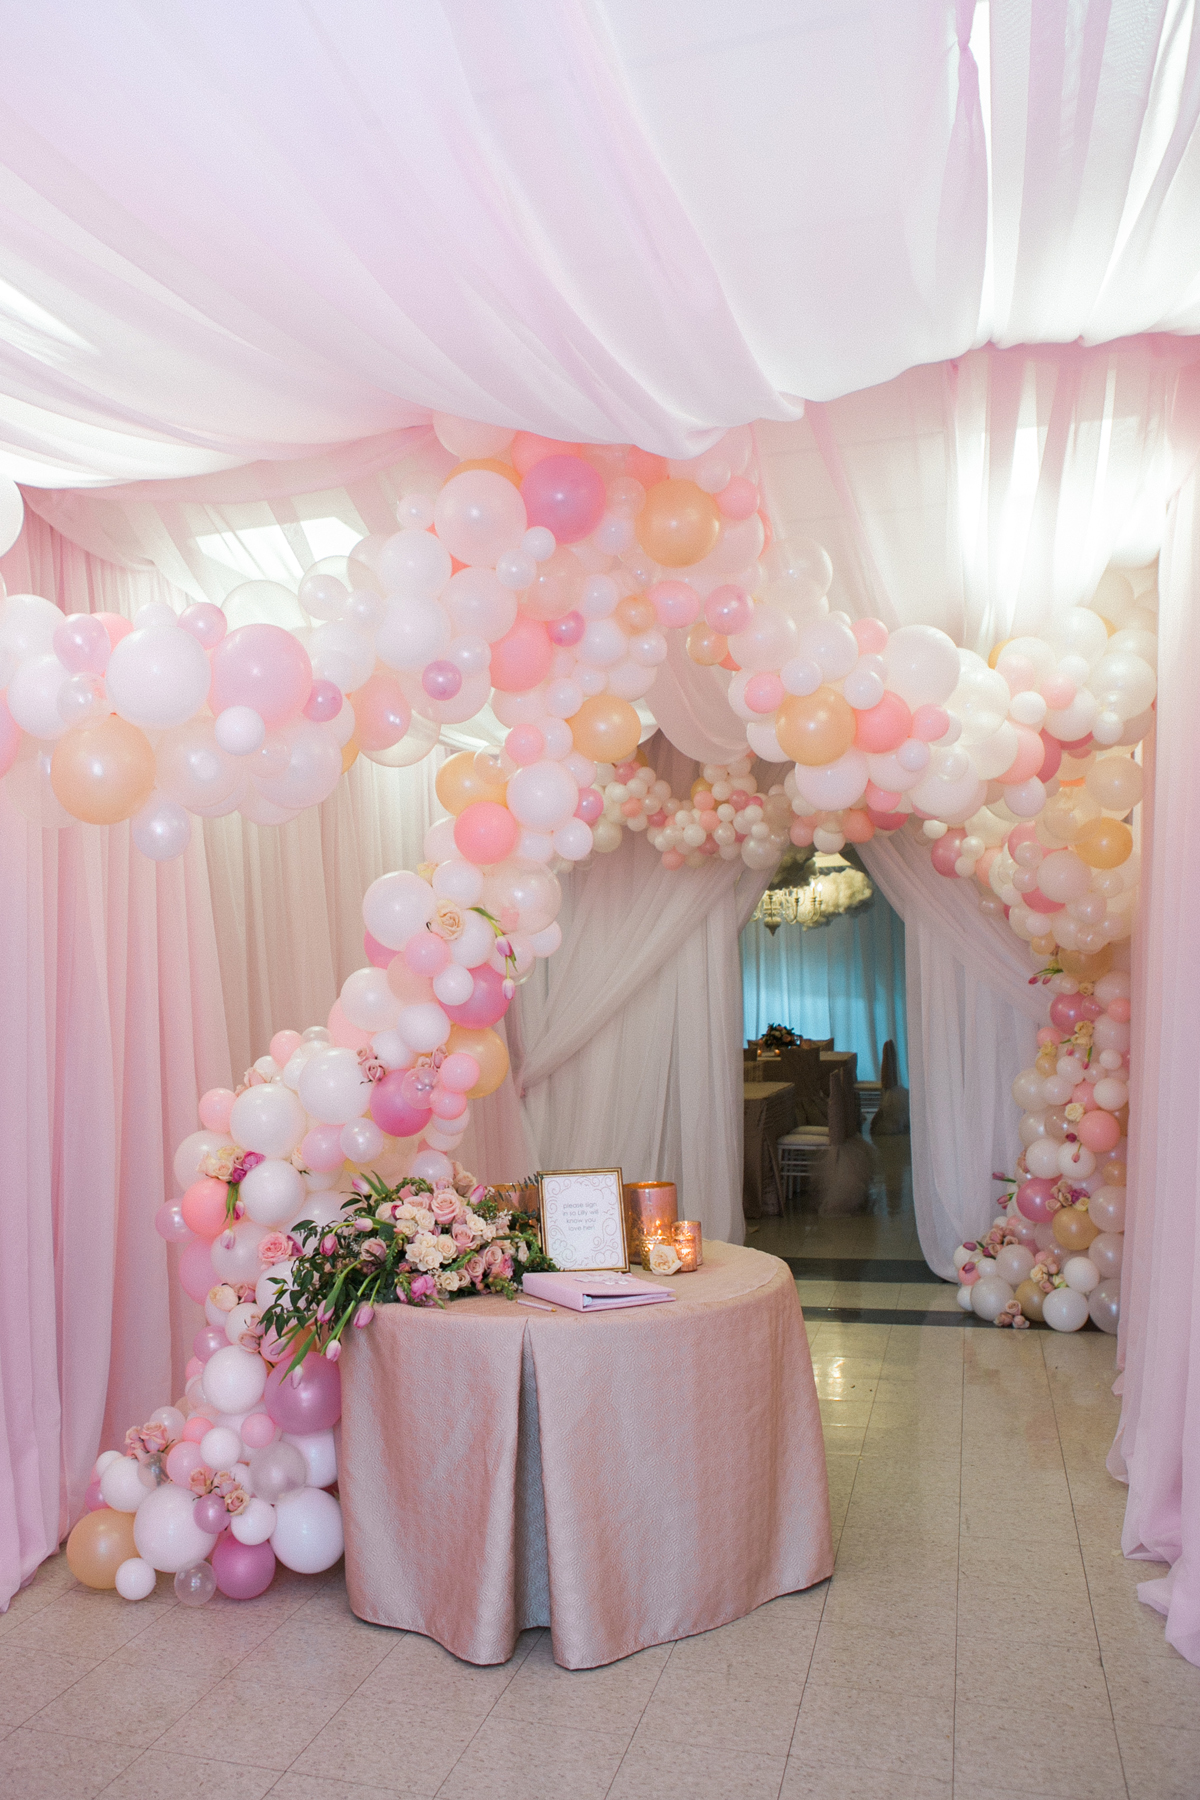 Soft Pink & White Baby Shower - Christopher Confero Design